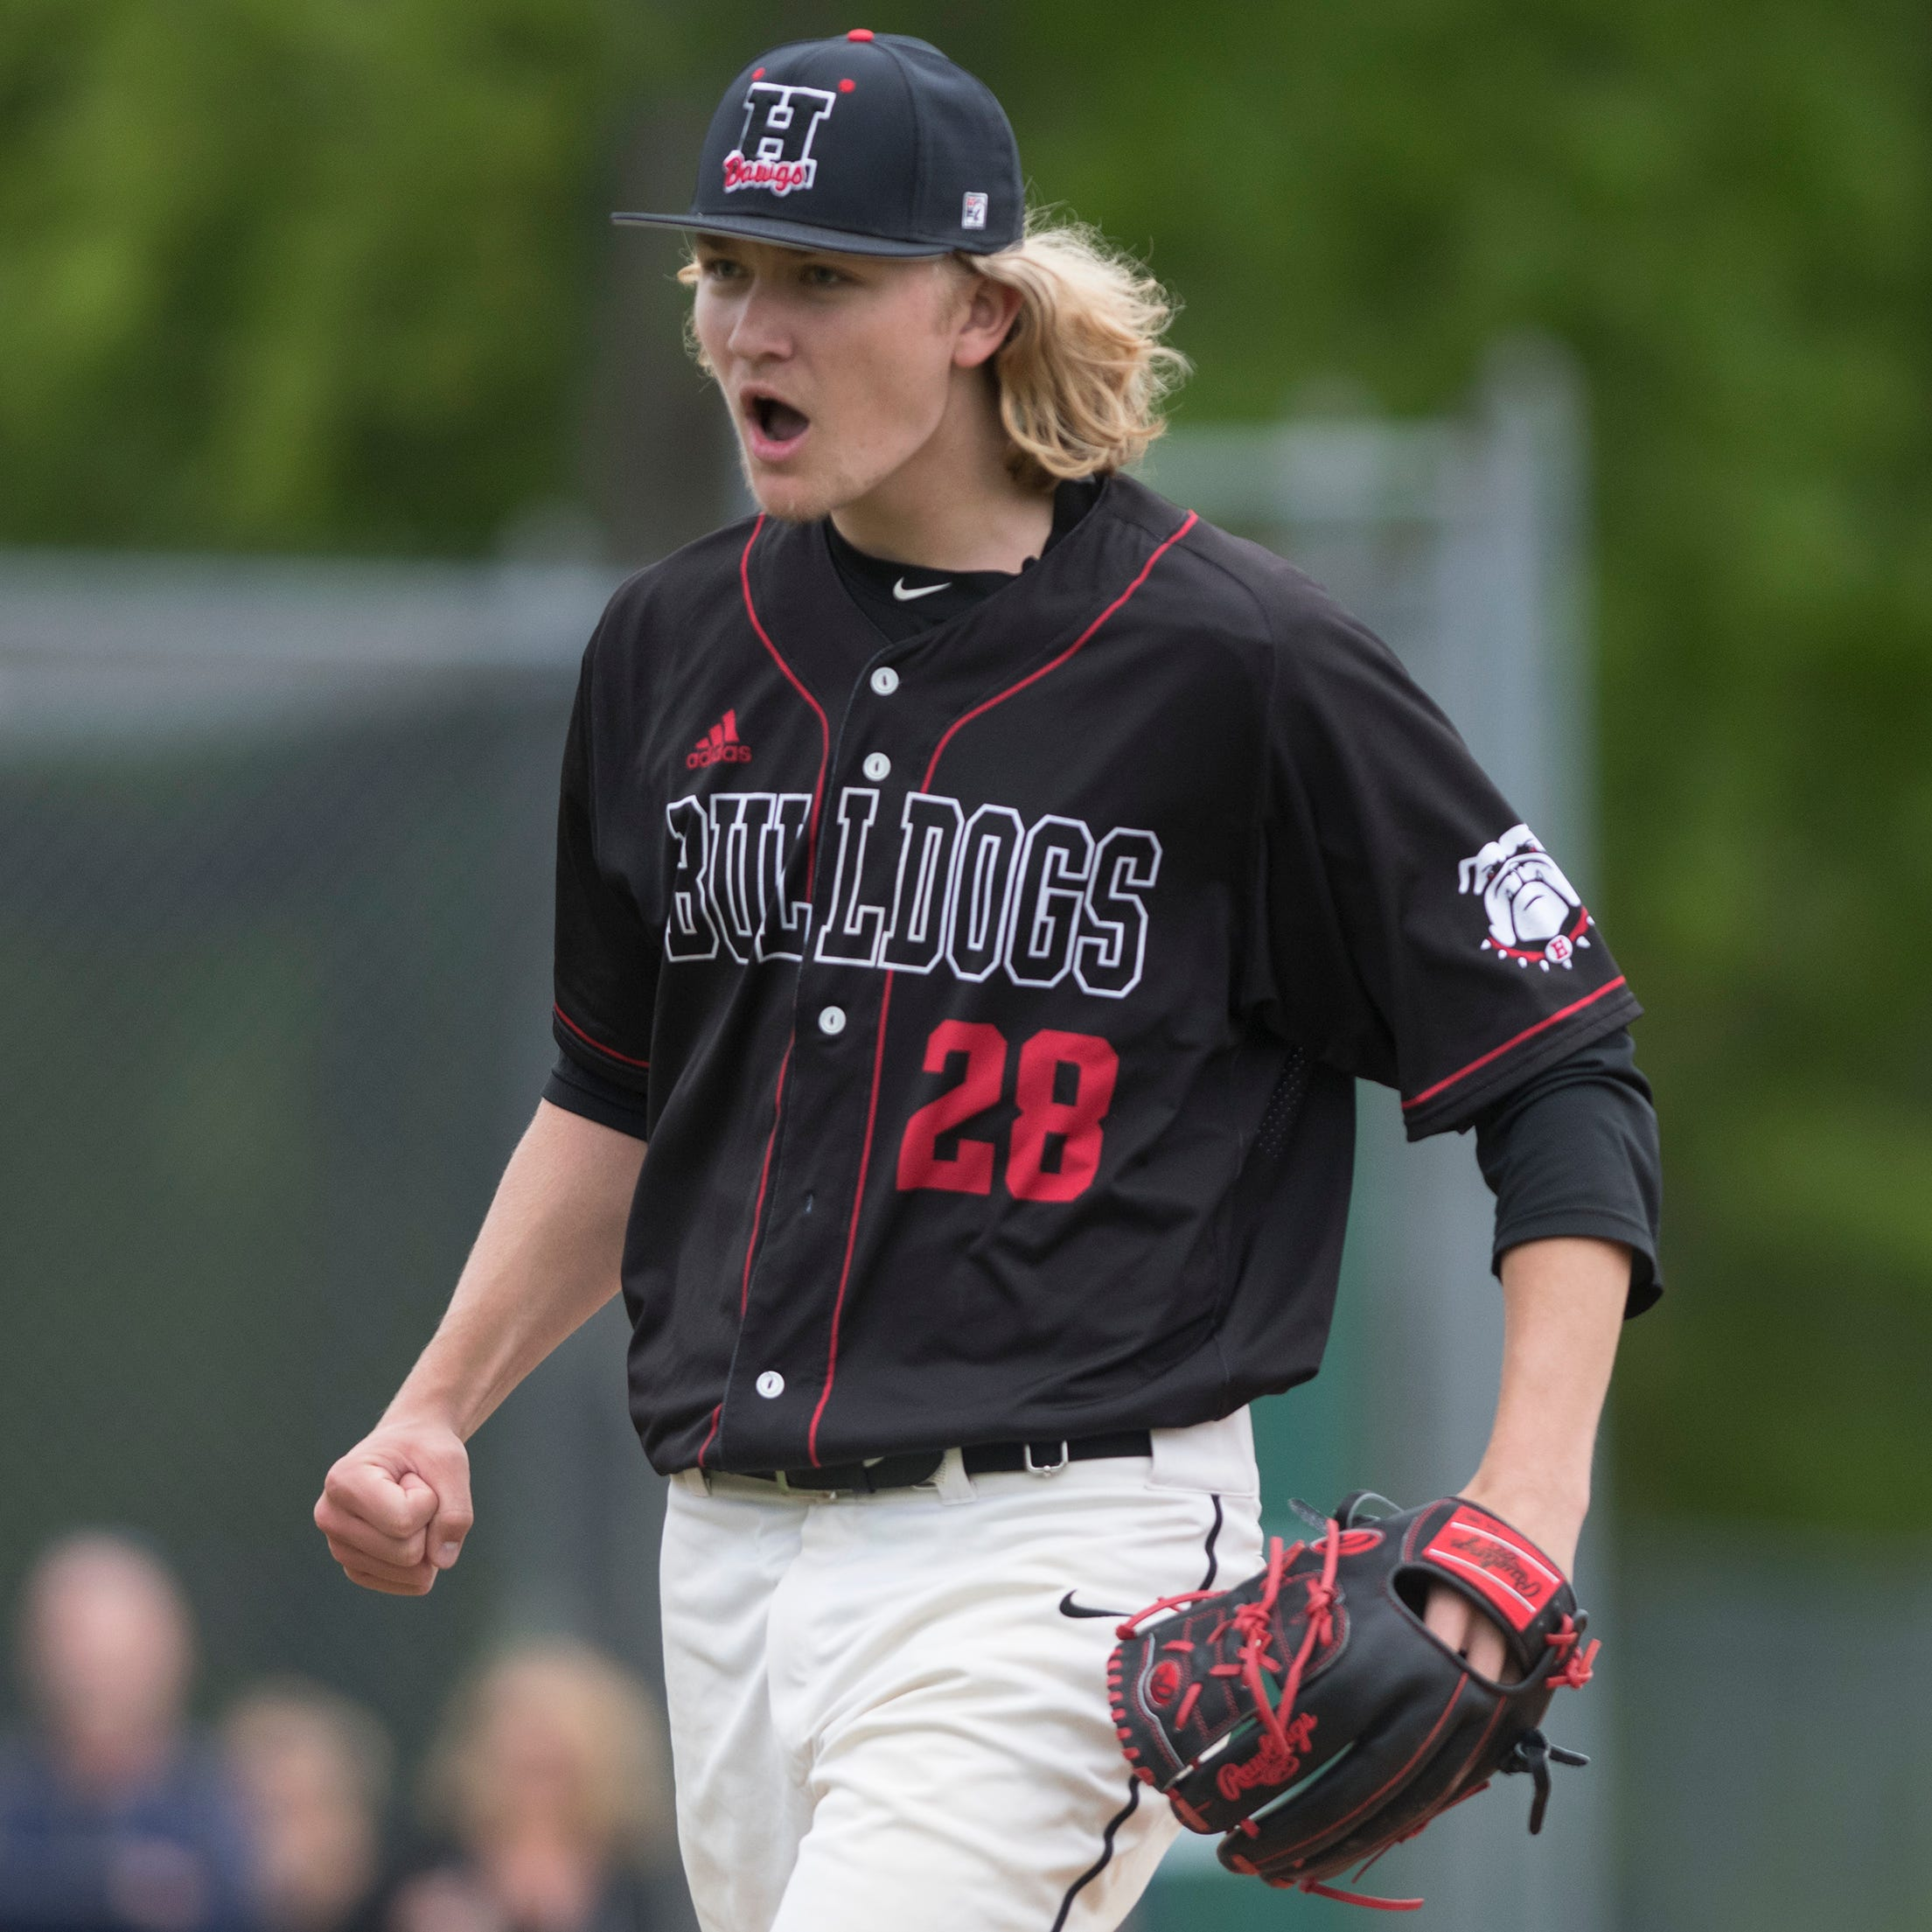 South Jersey baseball: Dylan Heine shines as Haddonfield tops Audubon